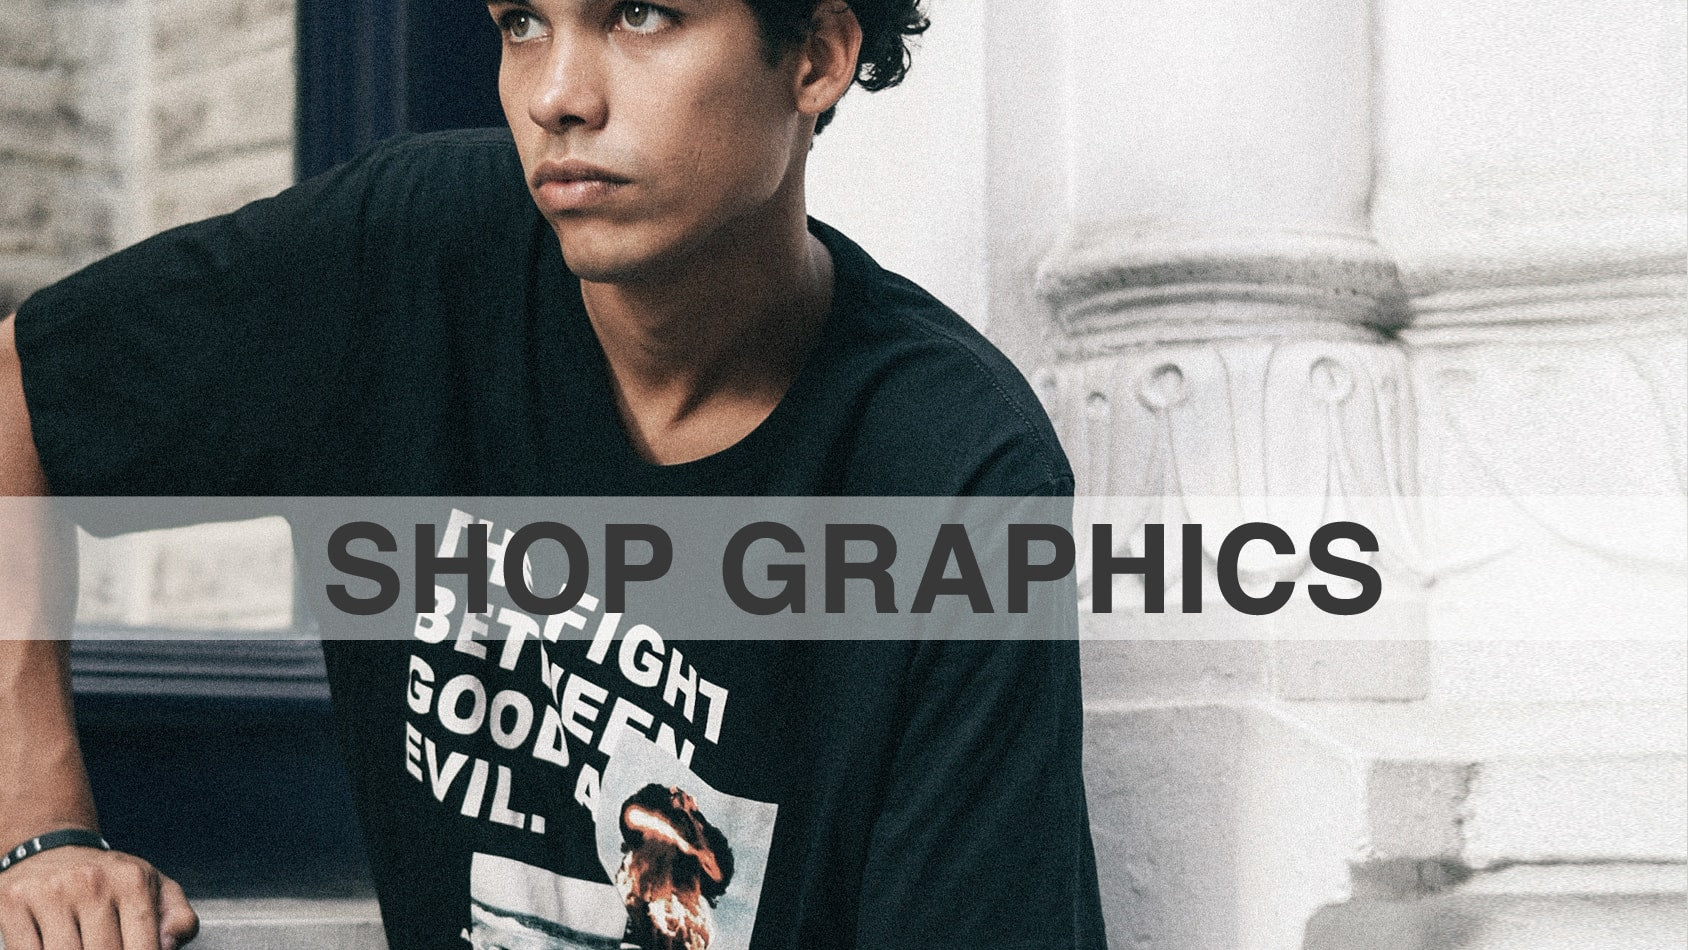 SHOP GRAPHICS